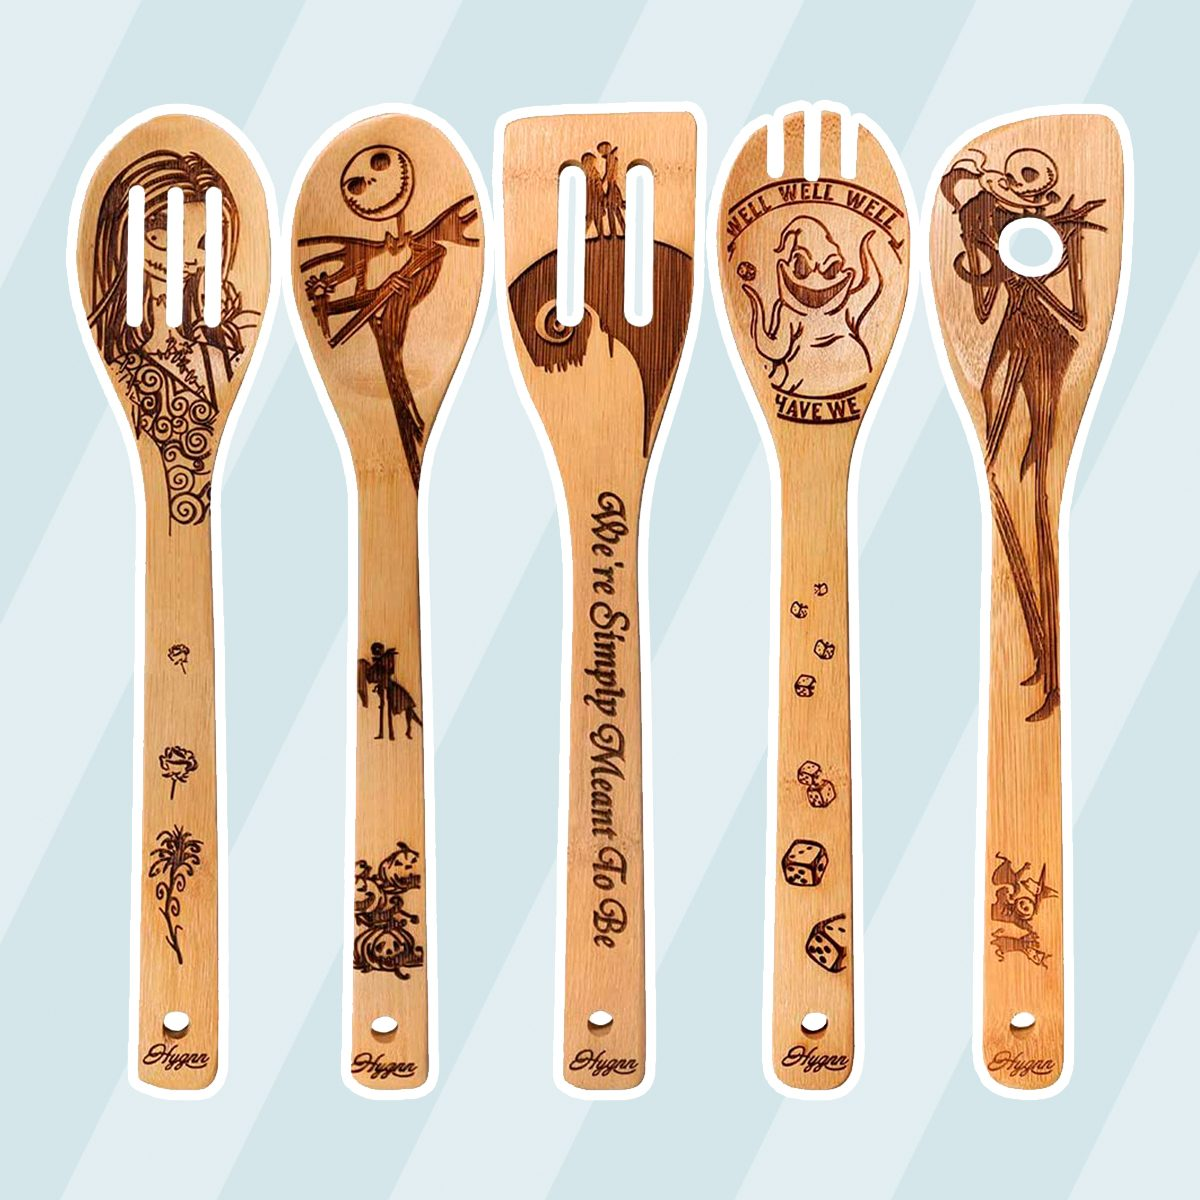 Halloween Gift Idea Utensil Burned Wooden Spoons Set House Warming Wedding Present Slotted Spoon 5 Piece …